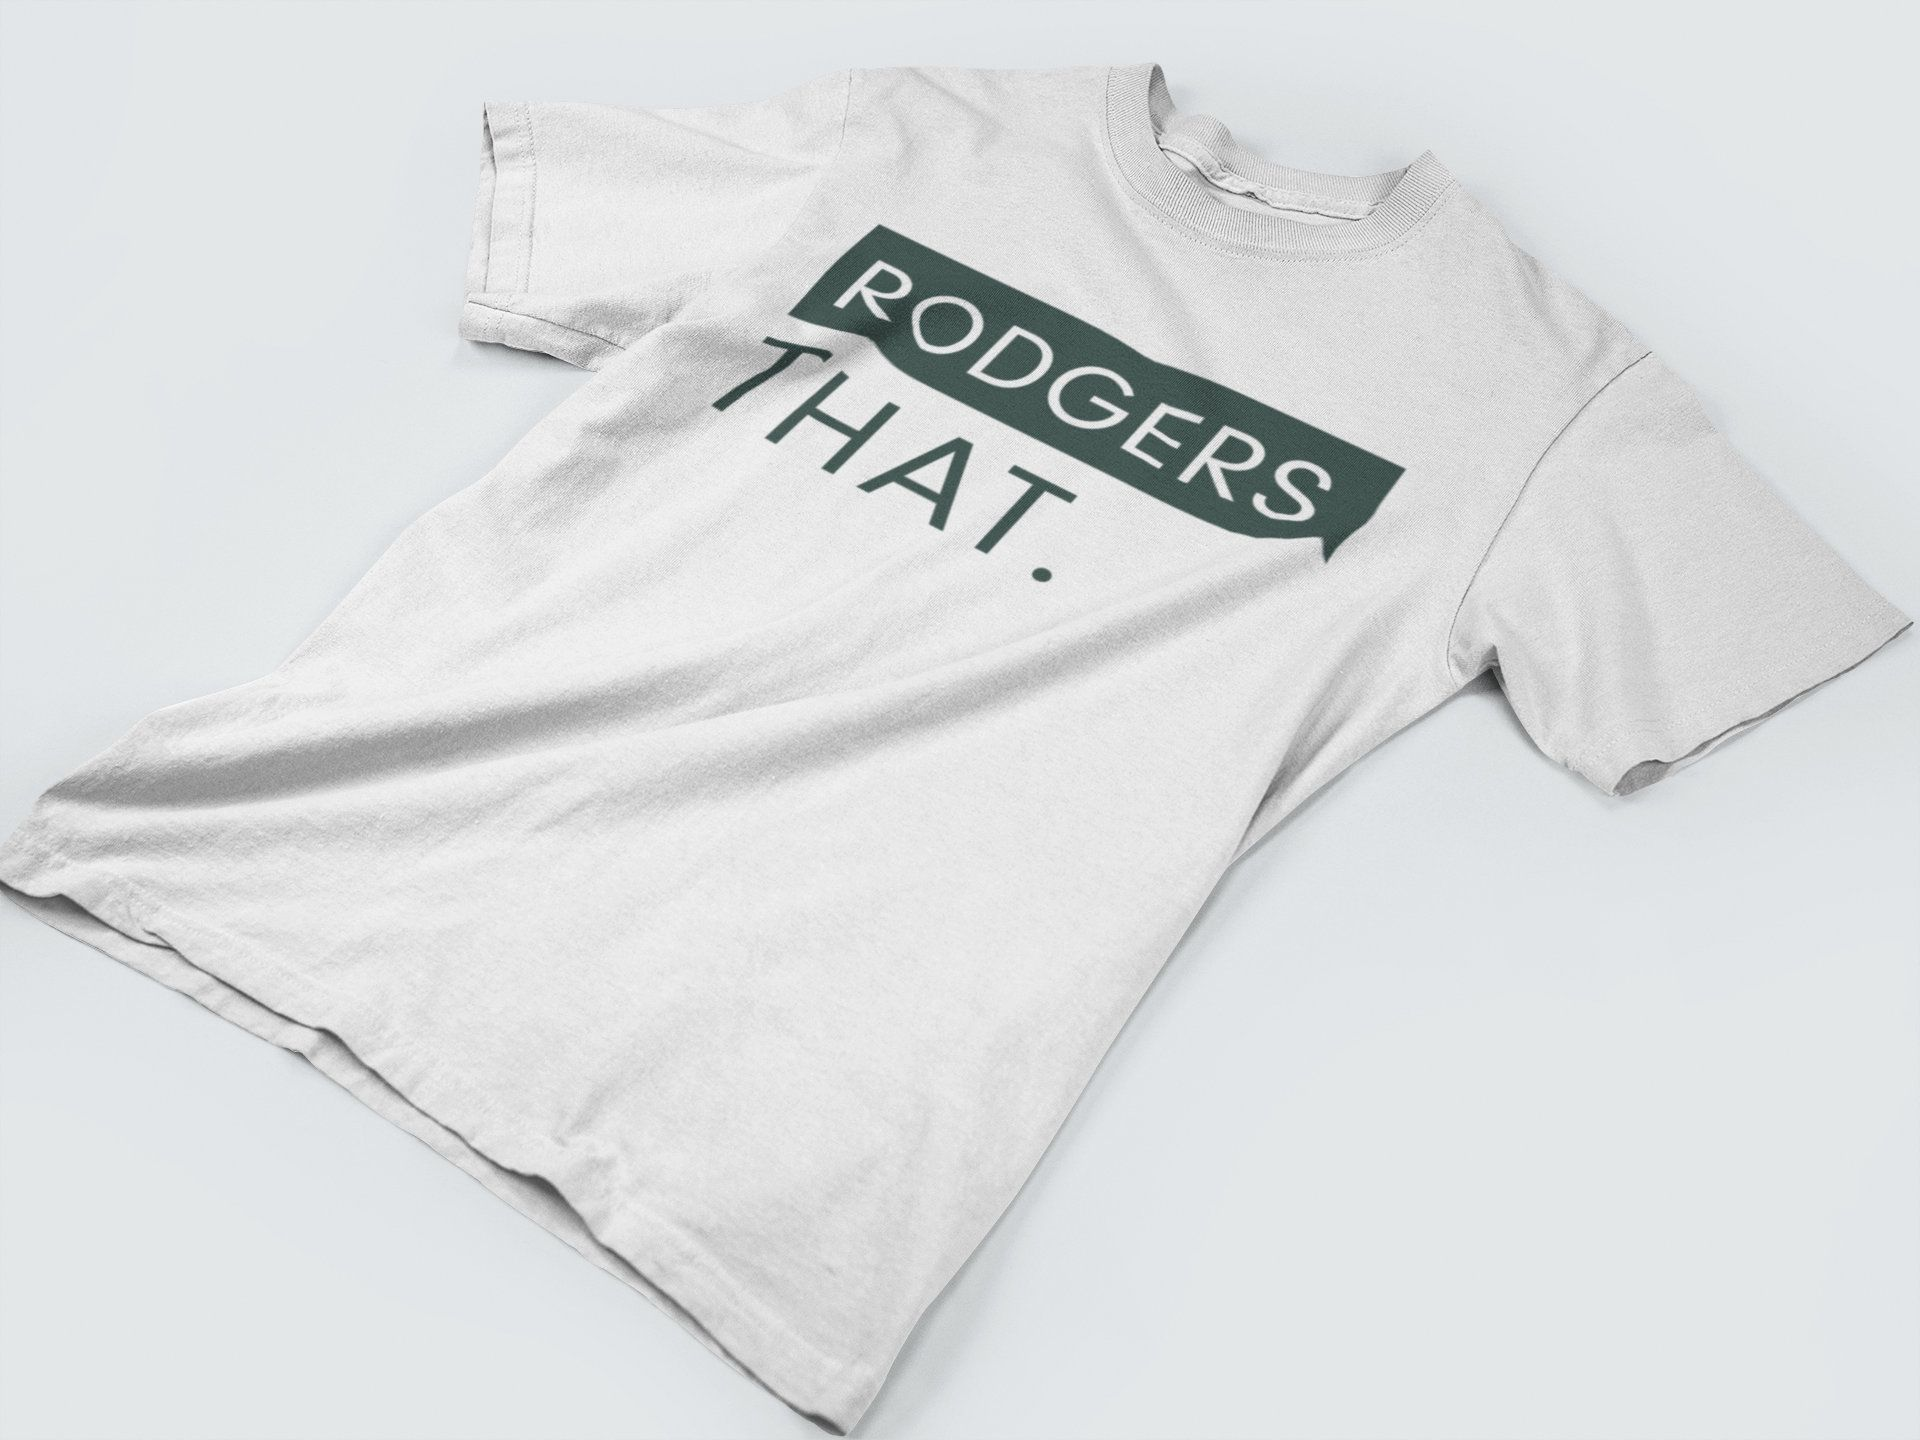 Rodgers That Funny Football T Shirt Multiple Color Options Aaron Rodgers Greenbay Packers Men S Women S Punny Gameday Outfit Football Tshirts Football Swag